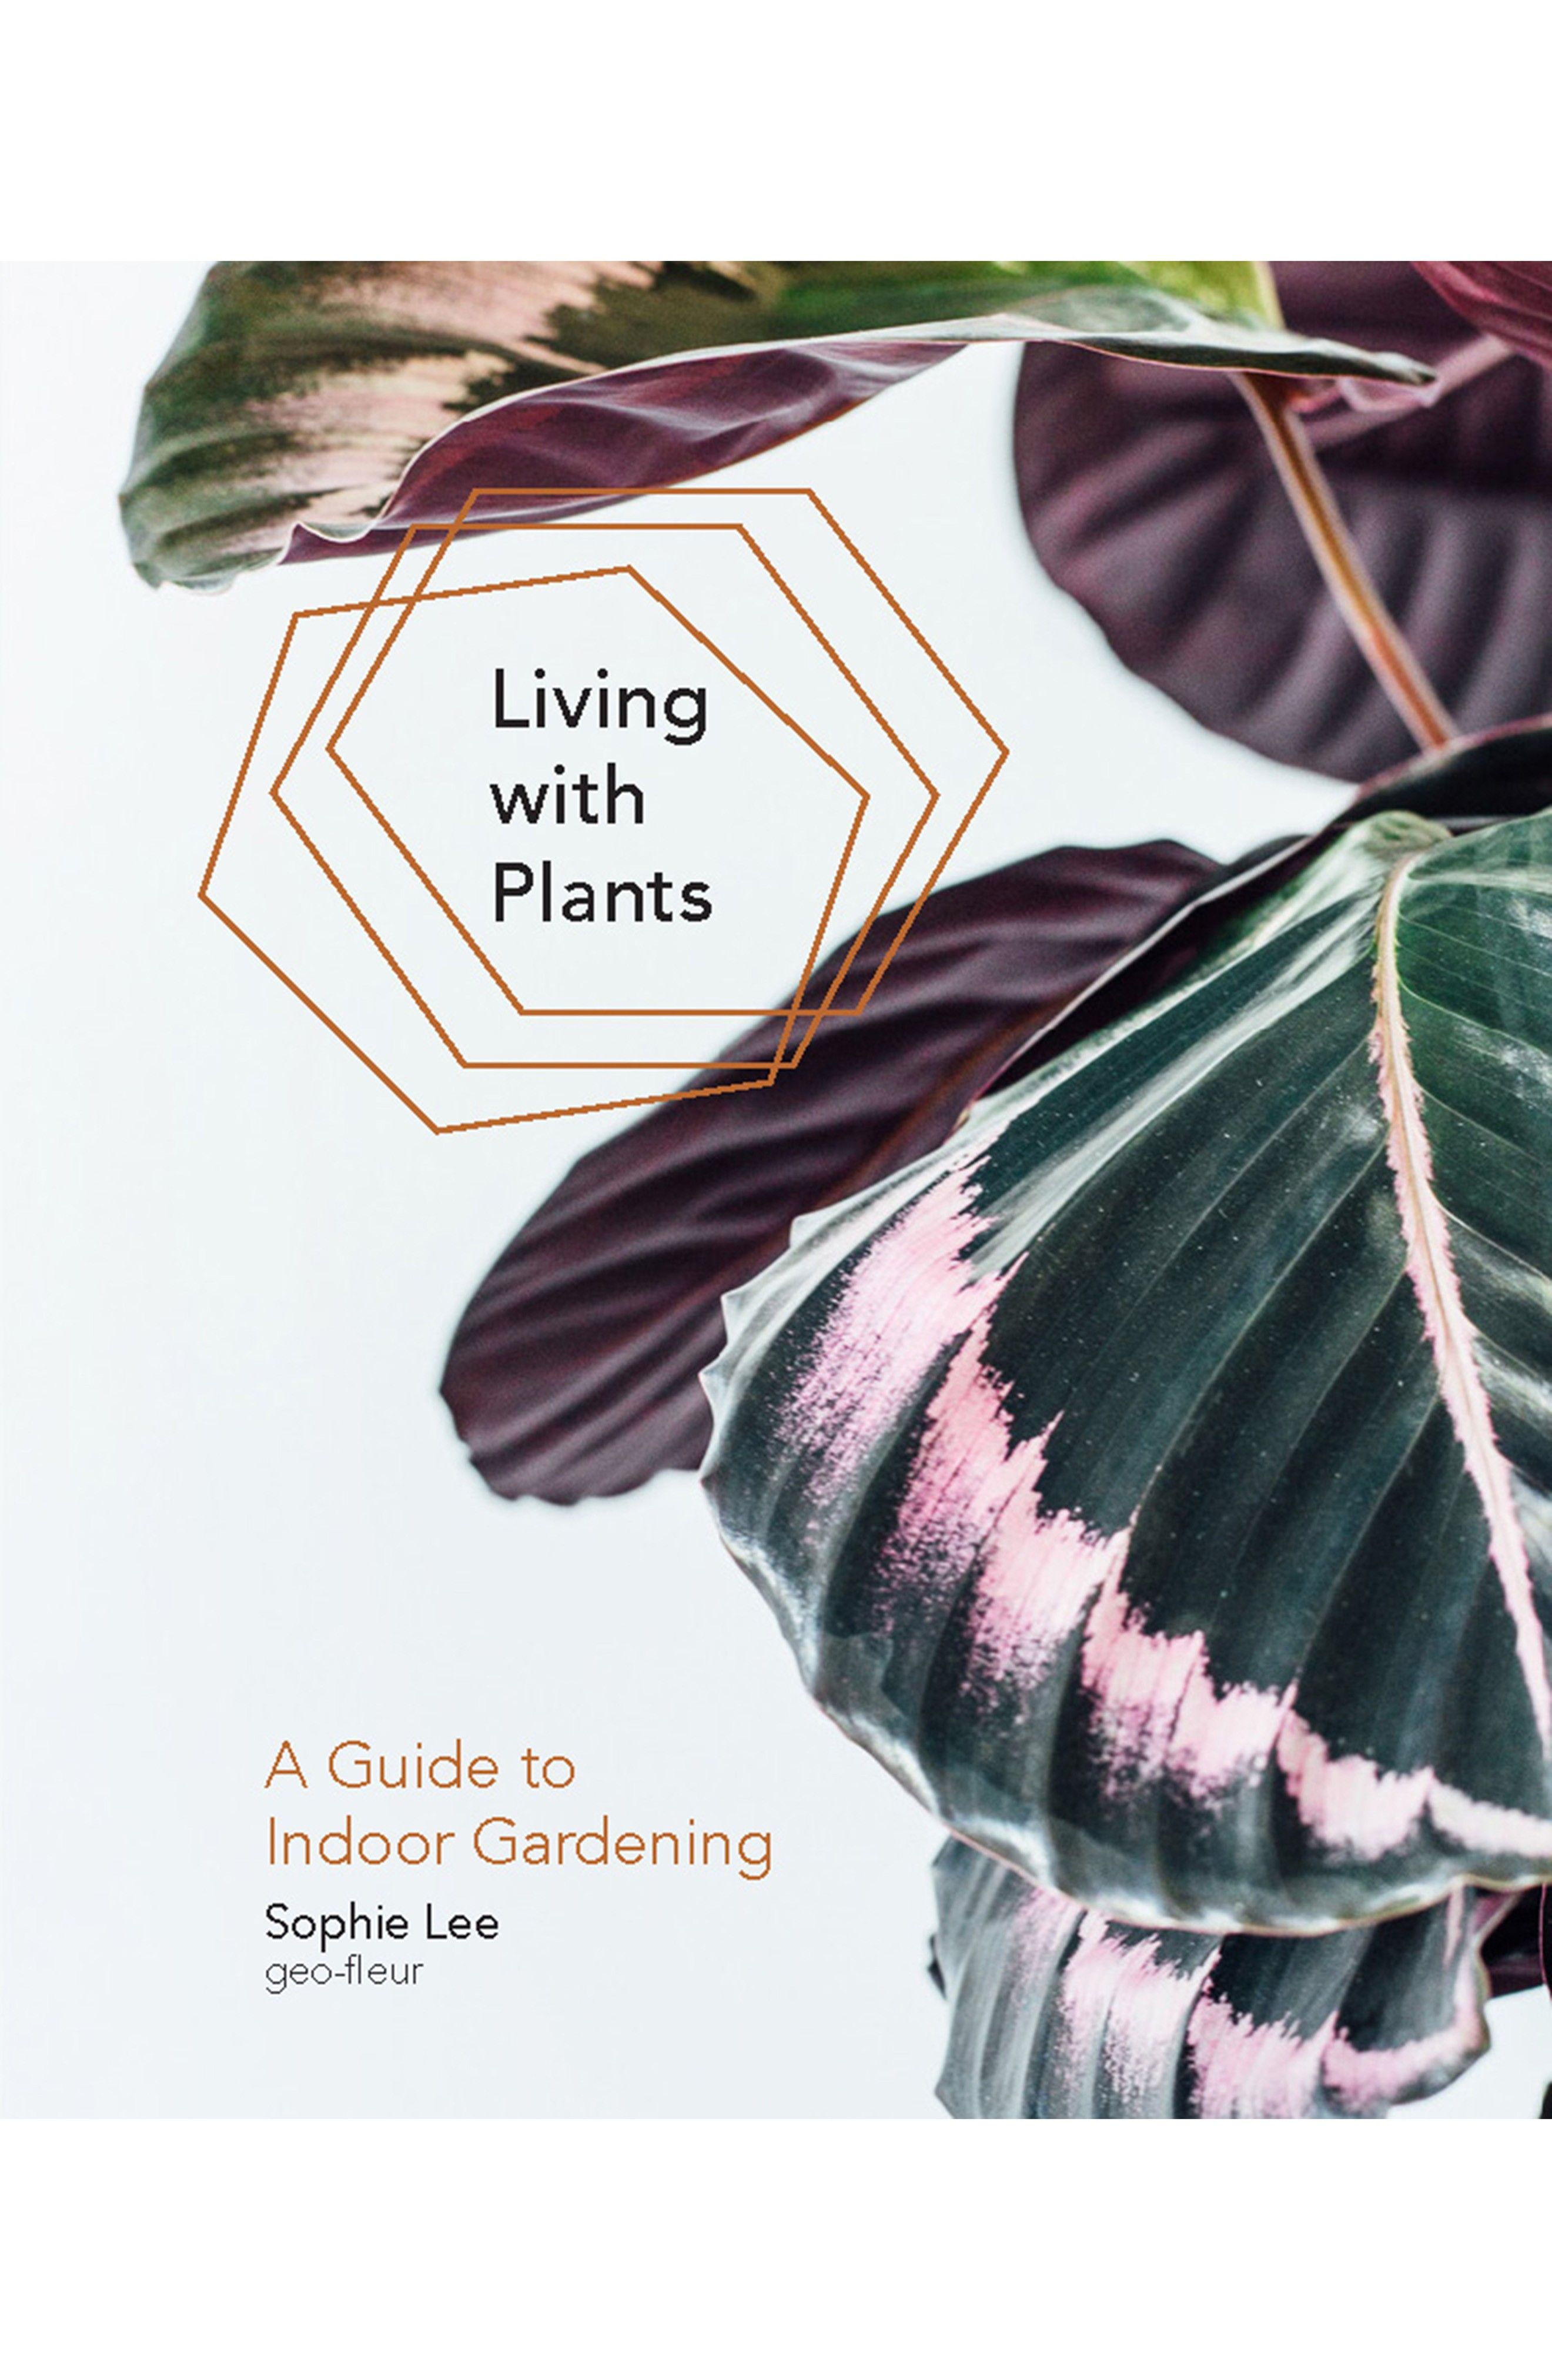 c297121f6c4602347172845b74a0dfc6 - Living With Plants A Guide To Indoor Gardening